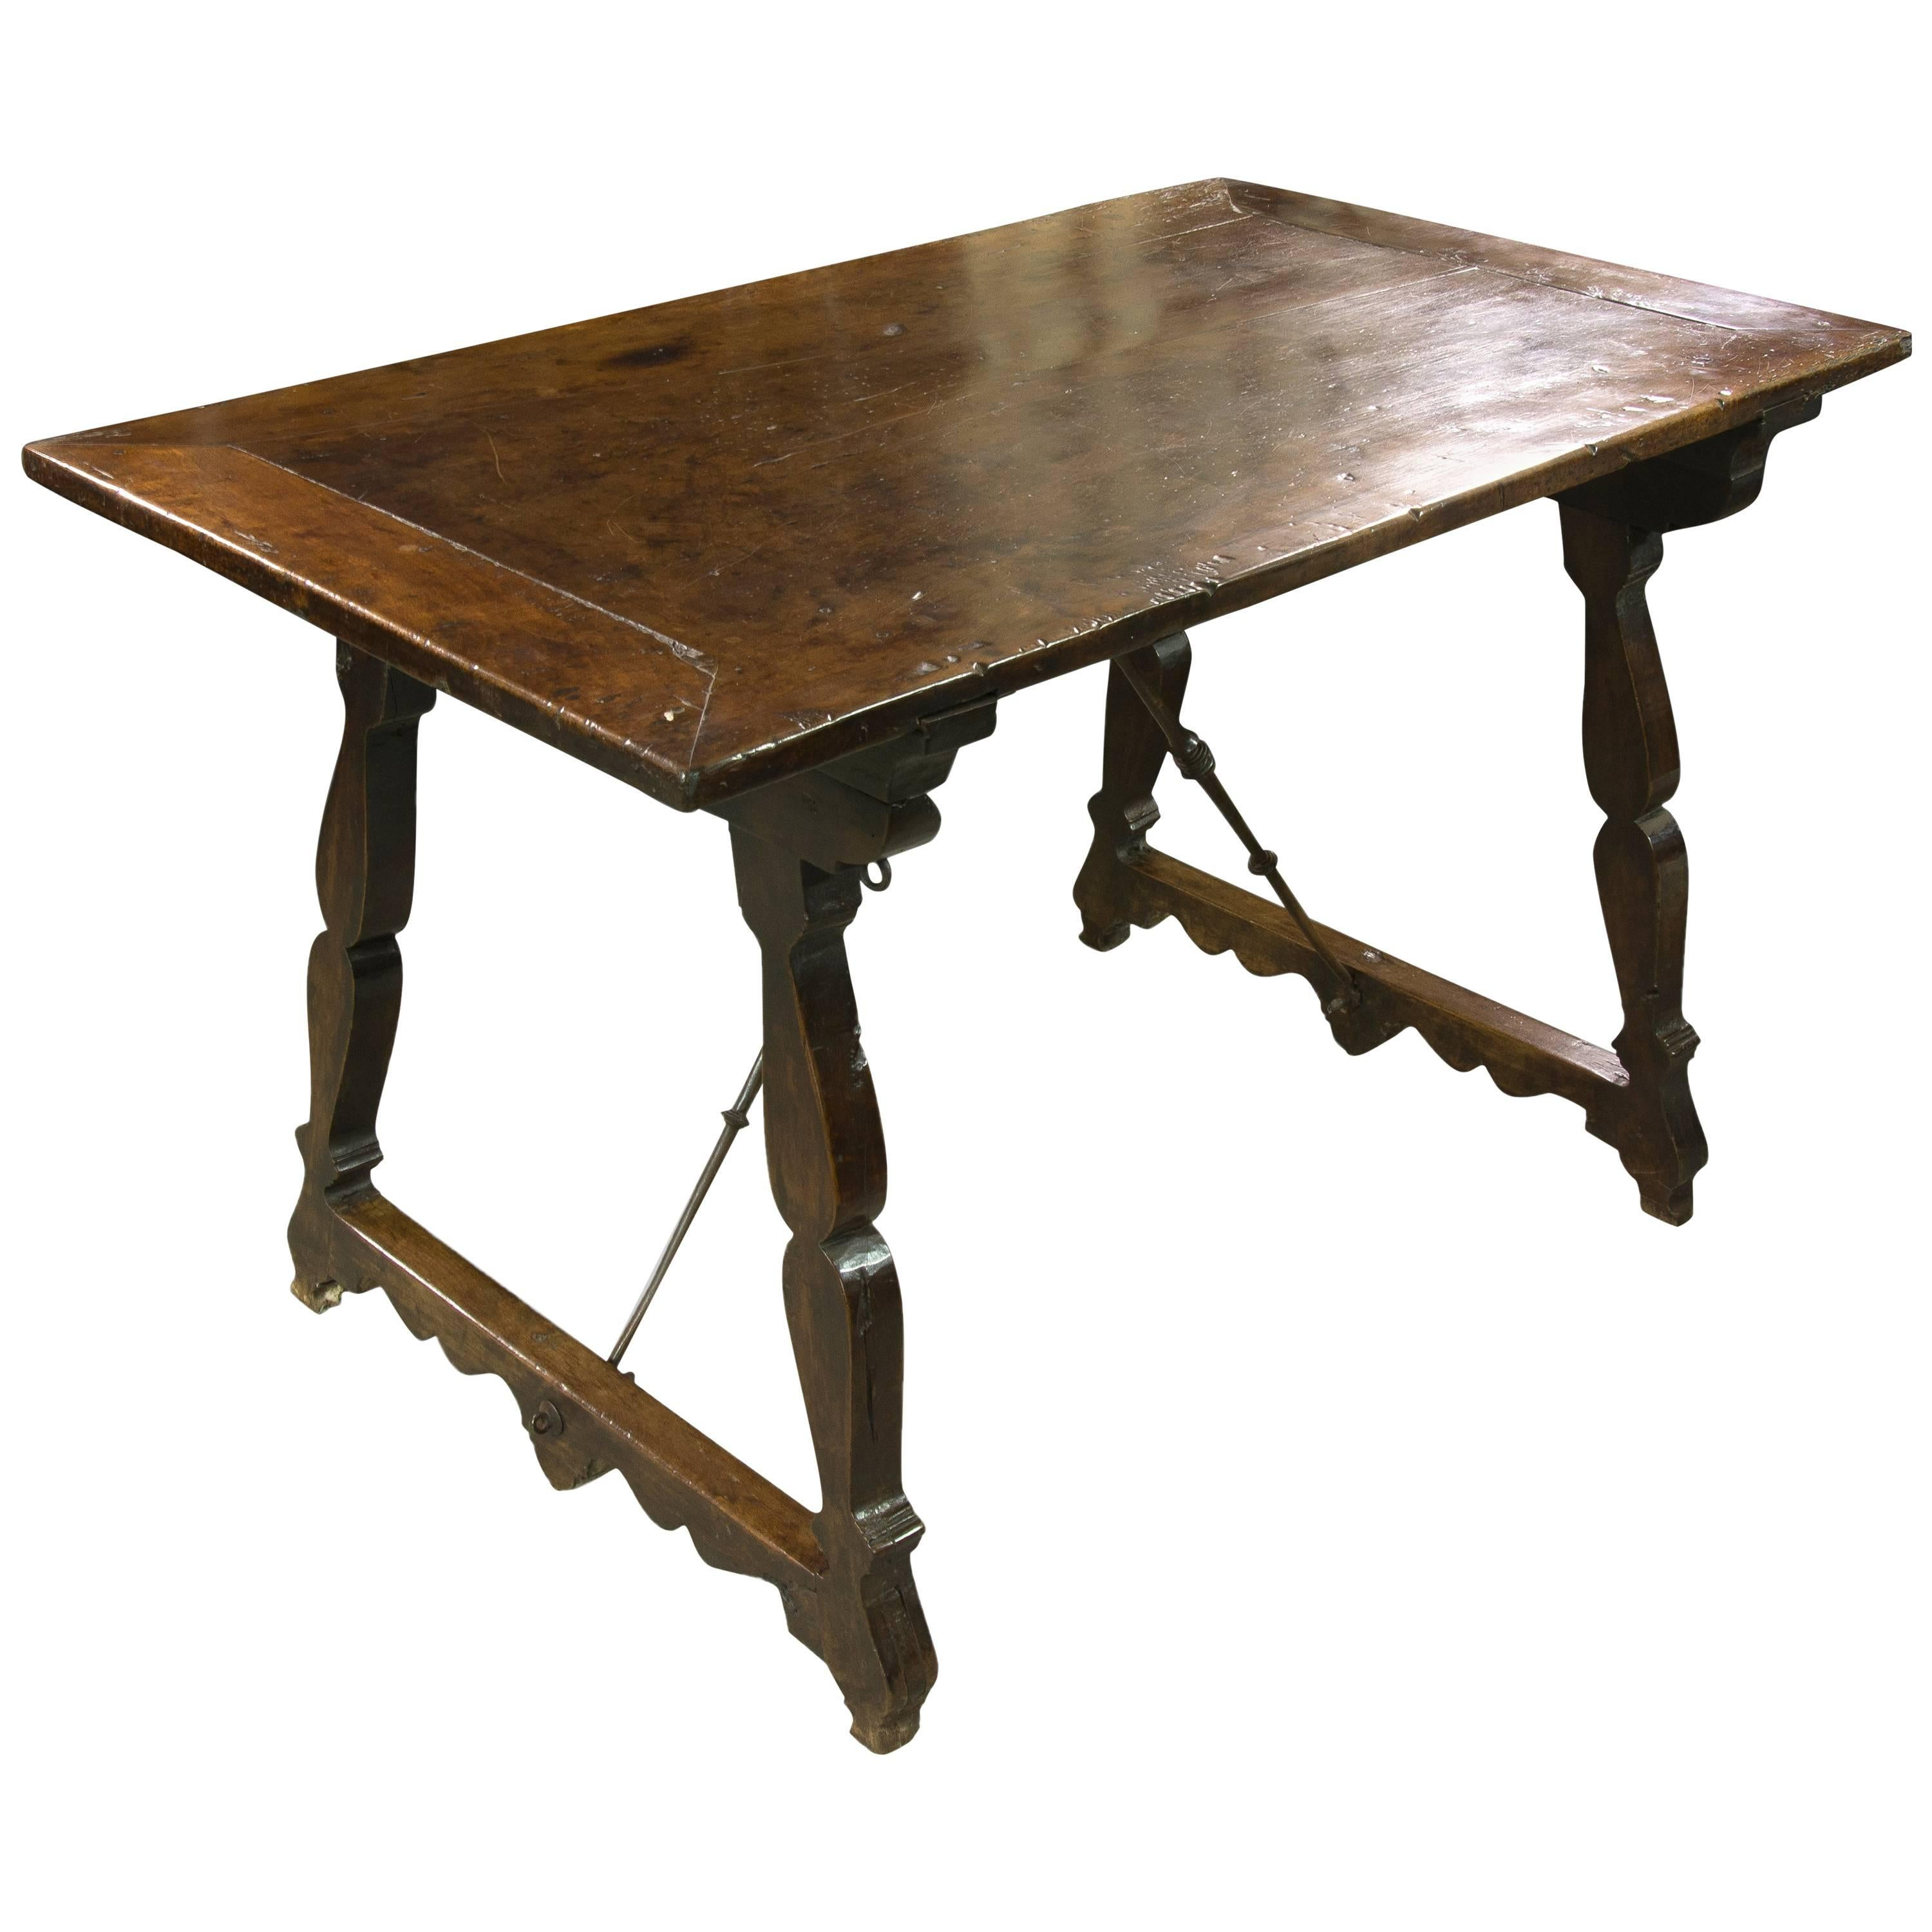 Walnut and Wrought Iron Table, Spain, 17th Century